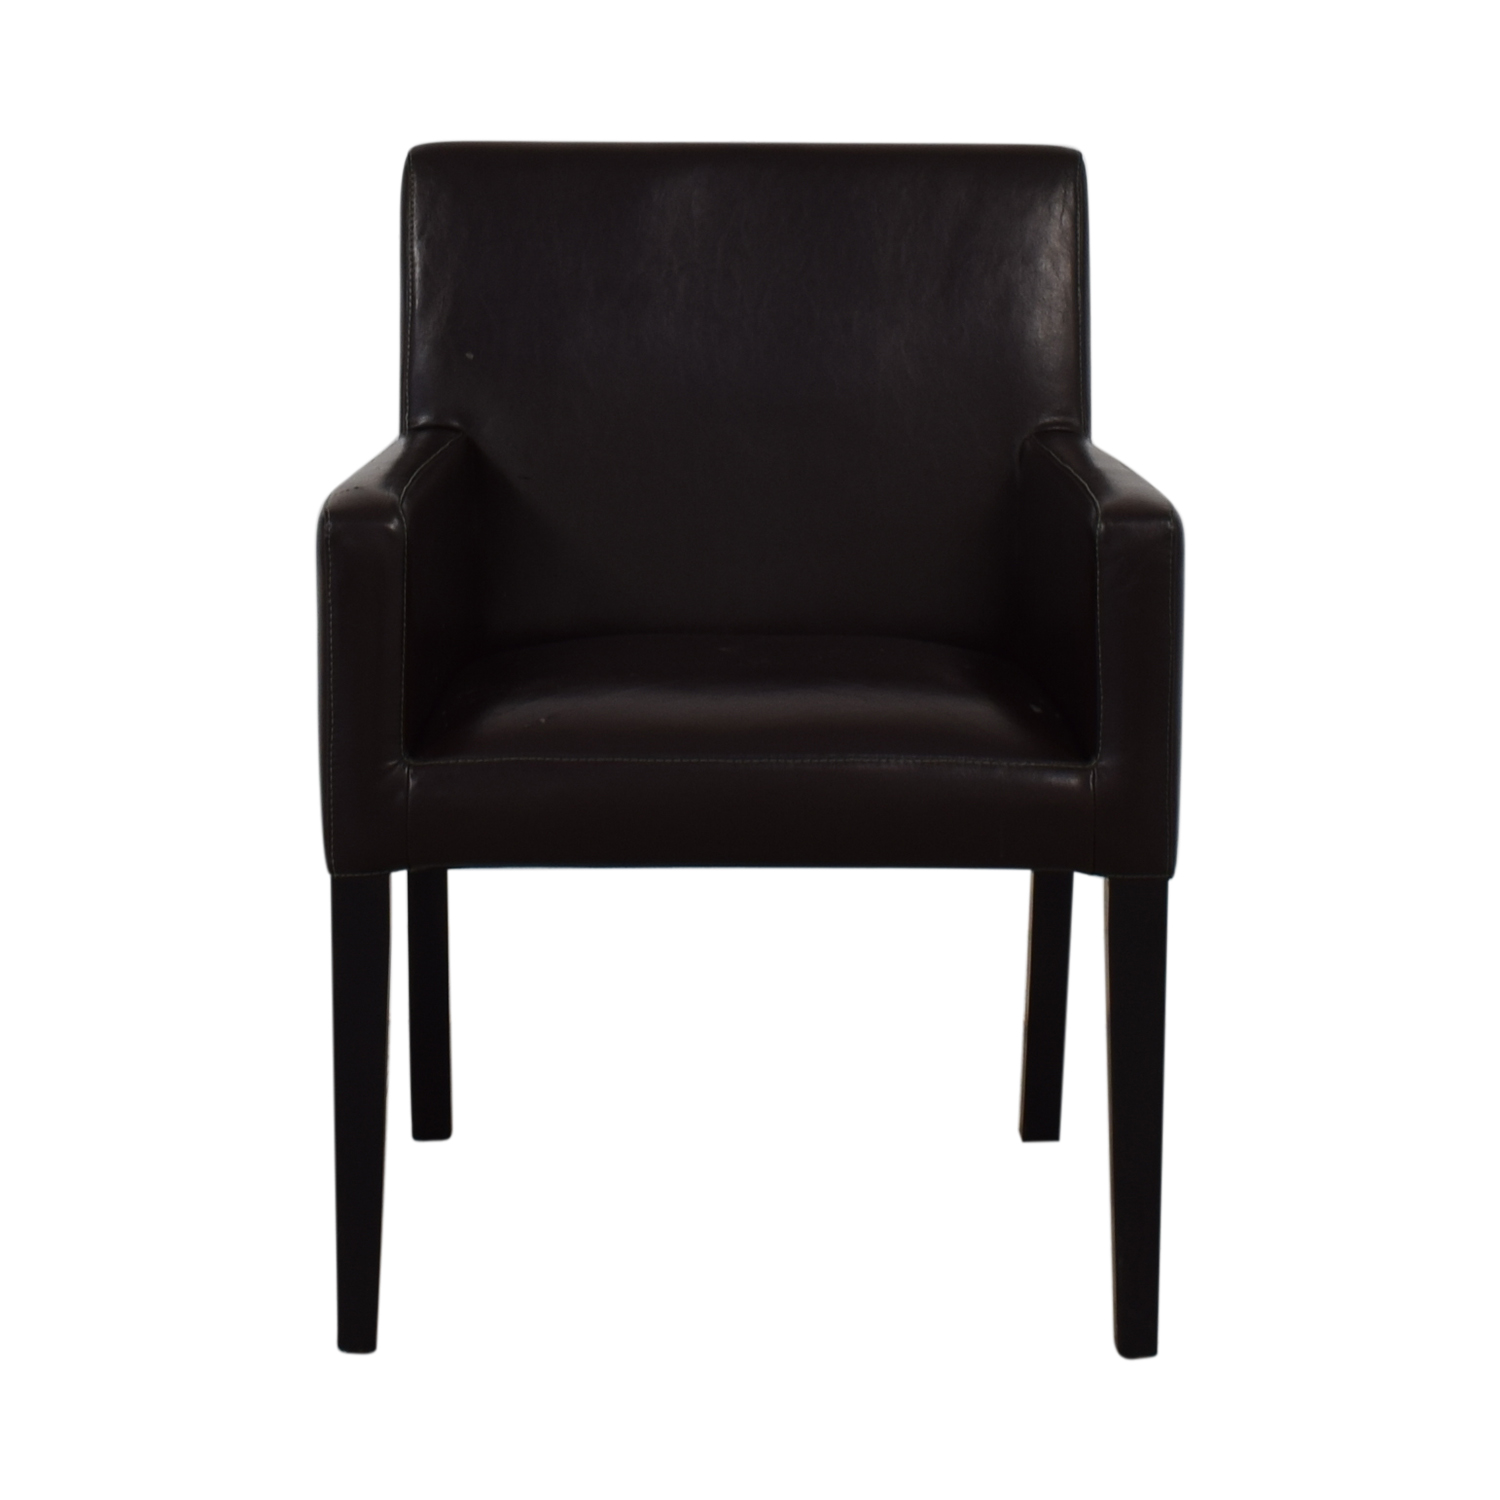 Crate U0026 Barrel Crate U0026 Barrel Brown Accent Chair Discount